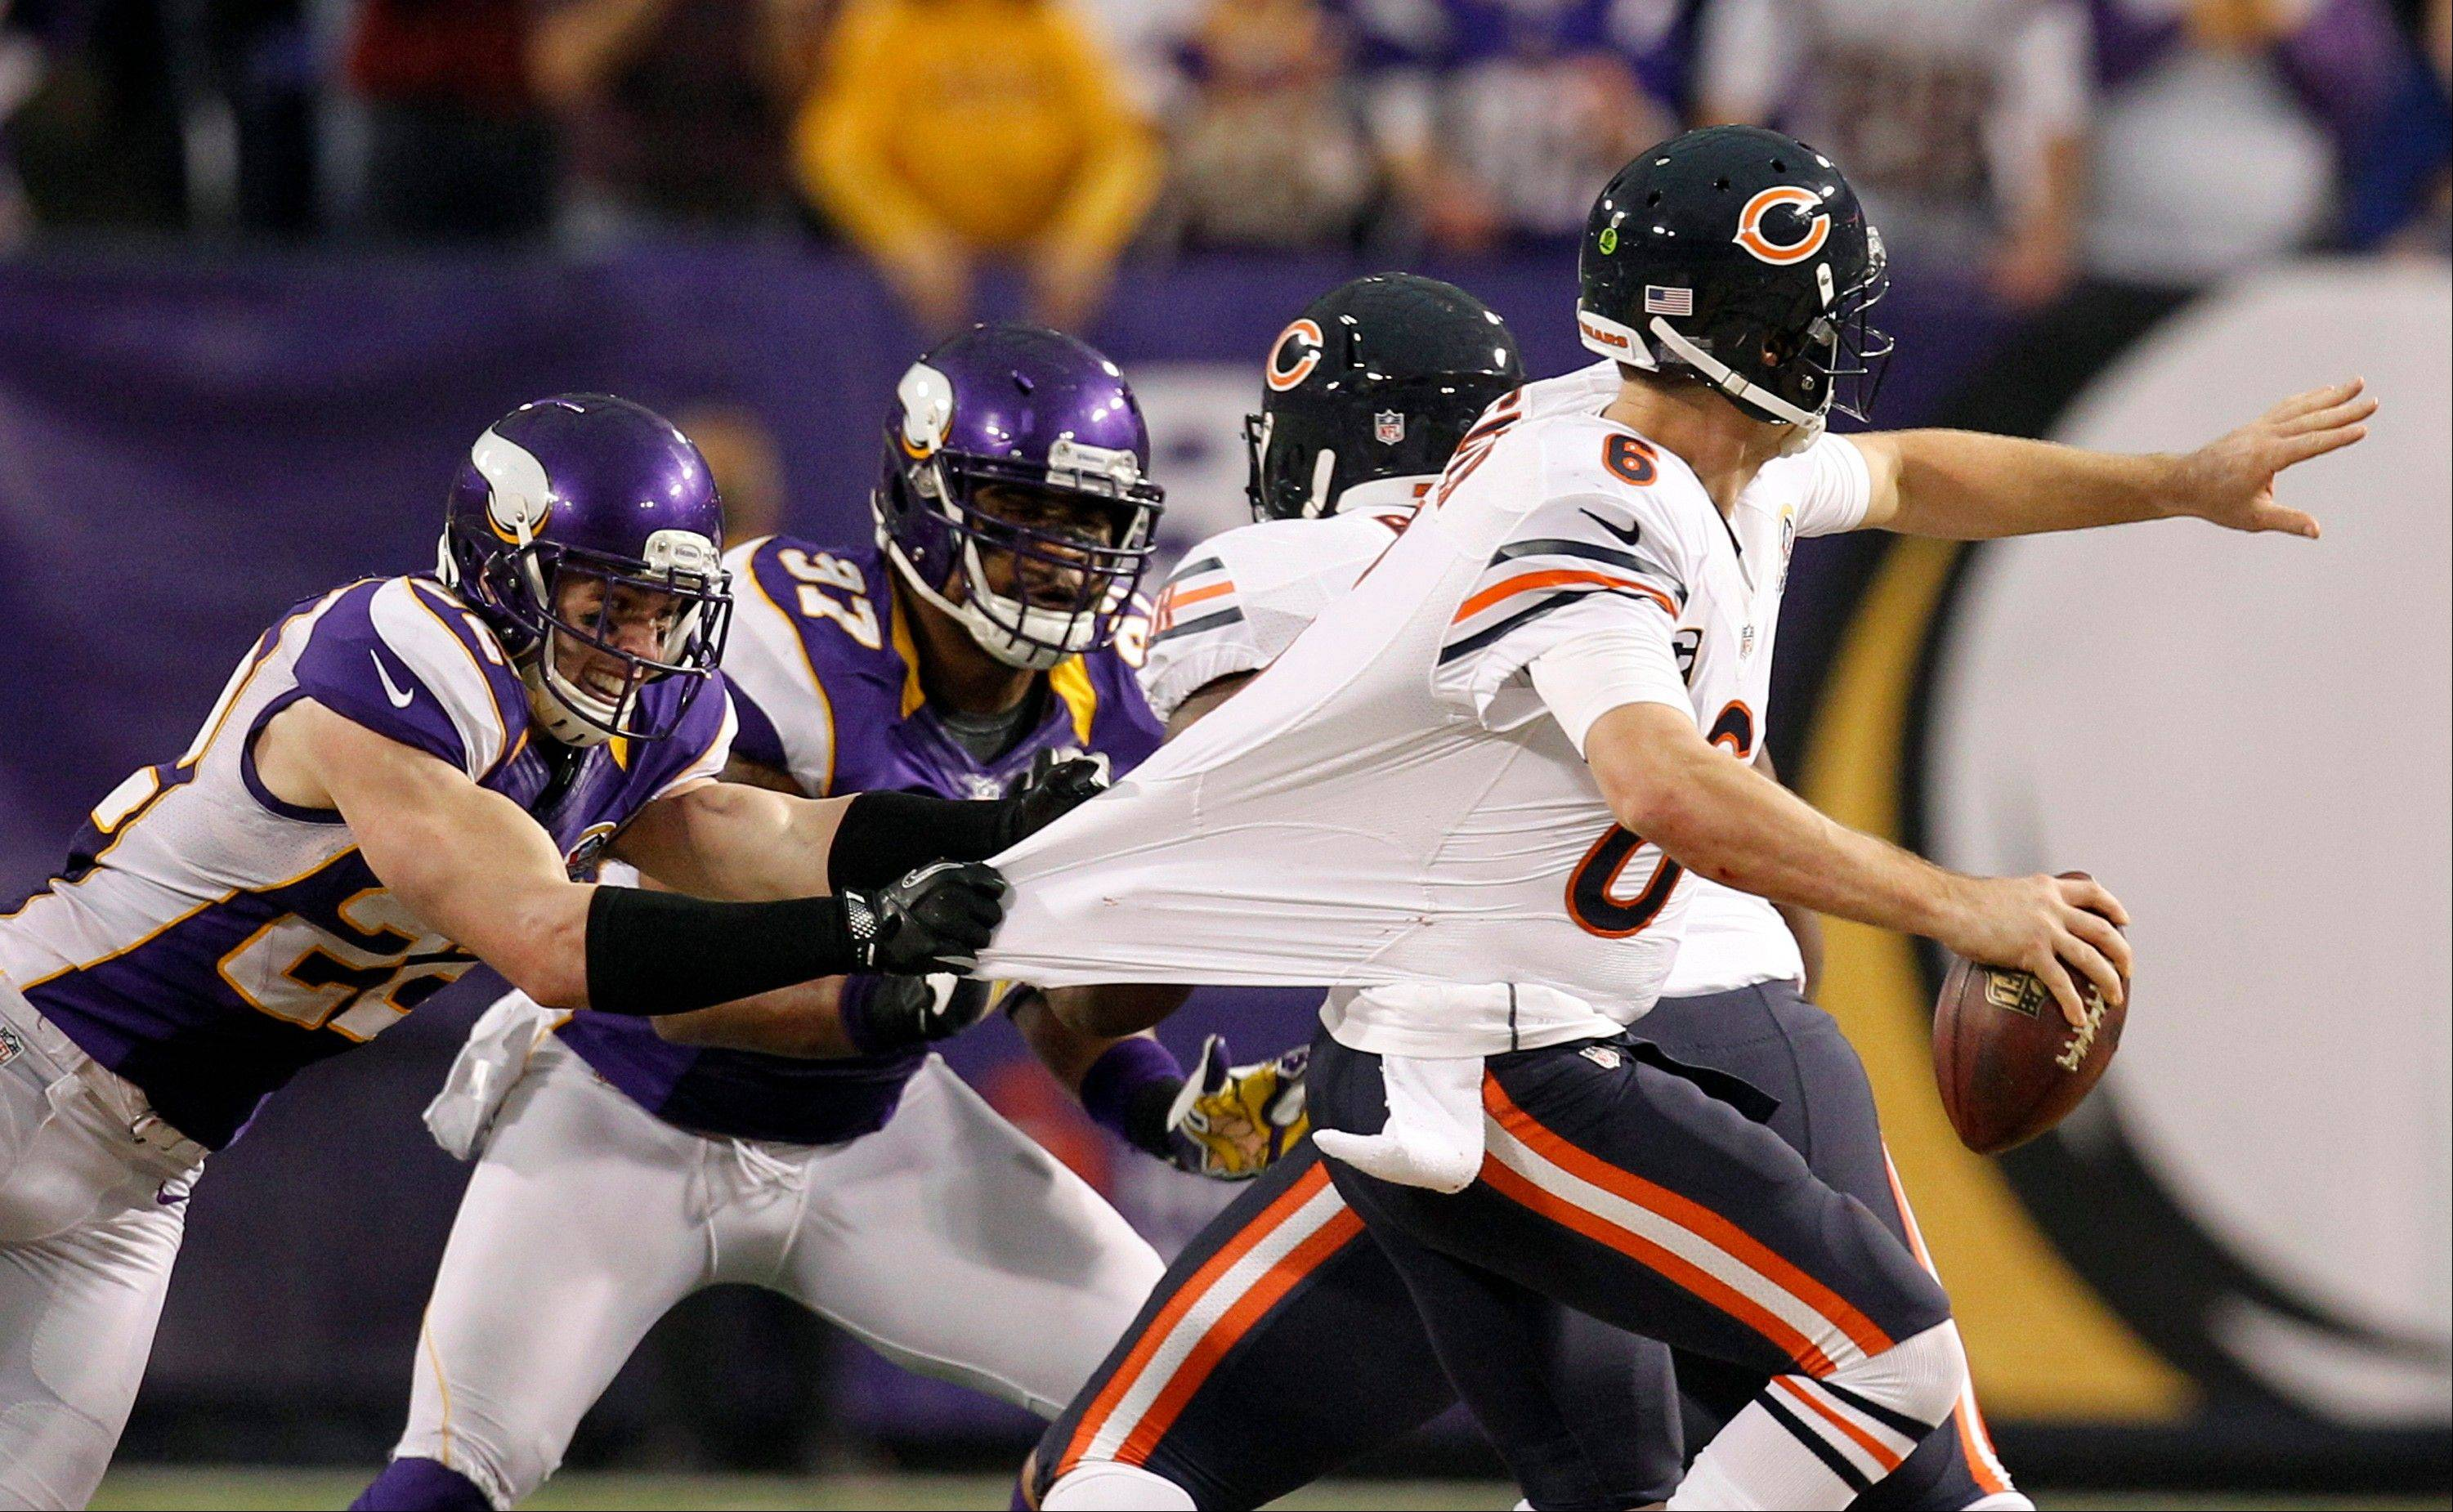 Bears quarterback Jay Cutler, right, runs from Minnesota Vikings safety Harrison Smith, left, and defensive end Everson Griffen (97) during the second half of an NFL football game Sunday, Dec. 9, 2012, in Minneapolis. The Vikings won 21-14.